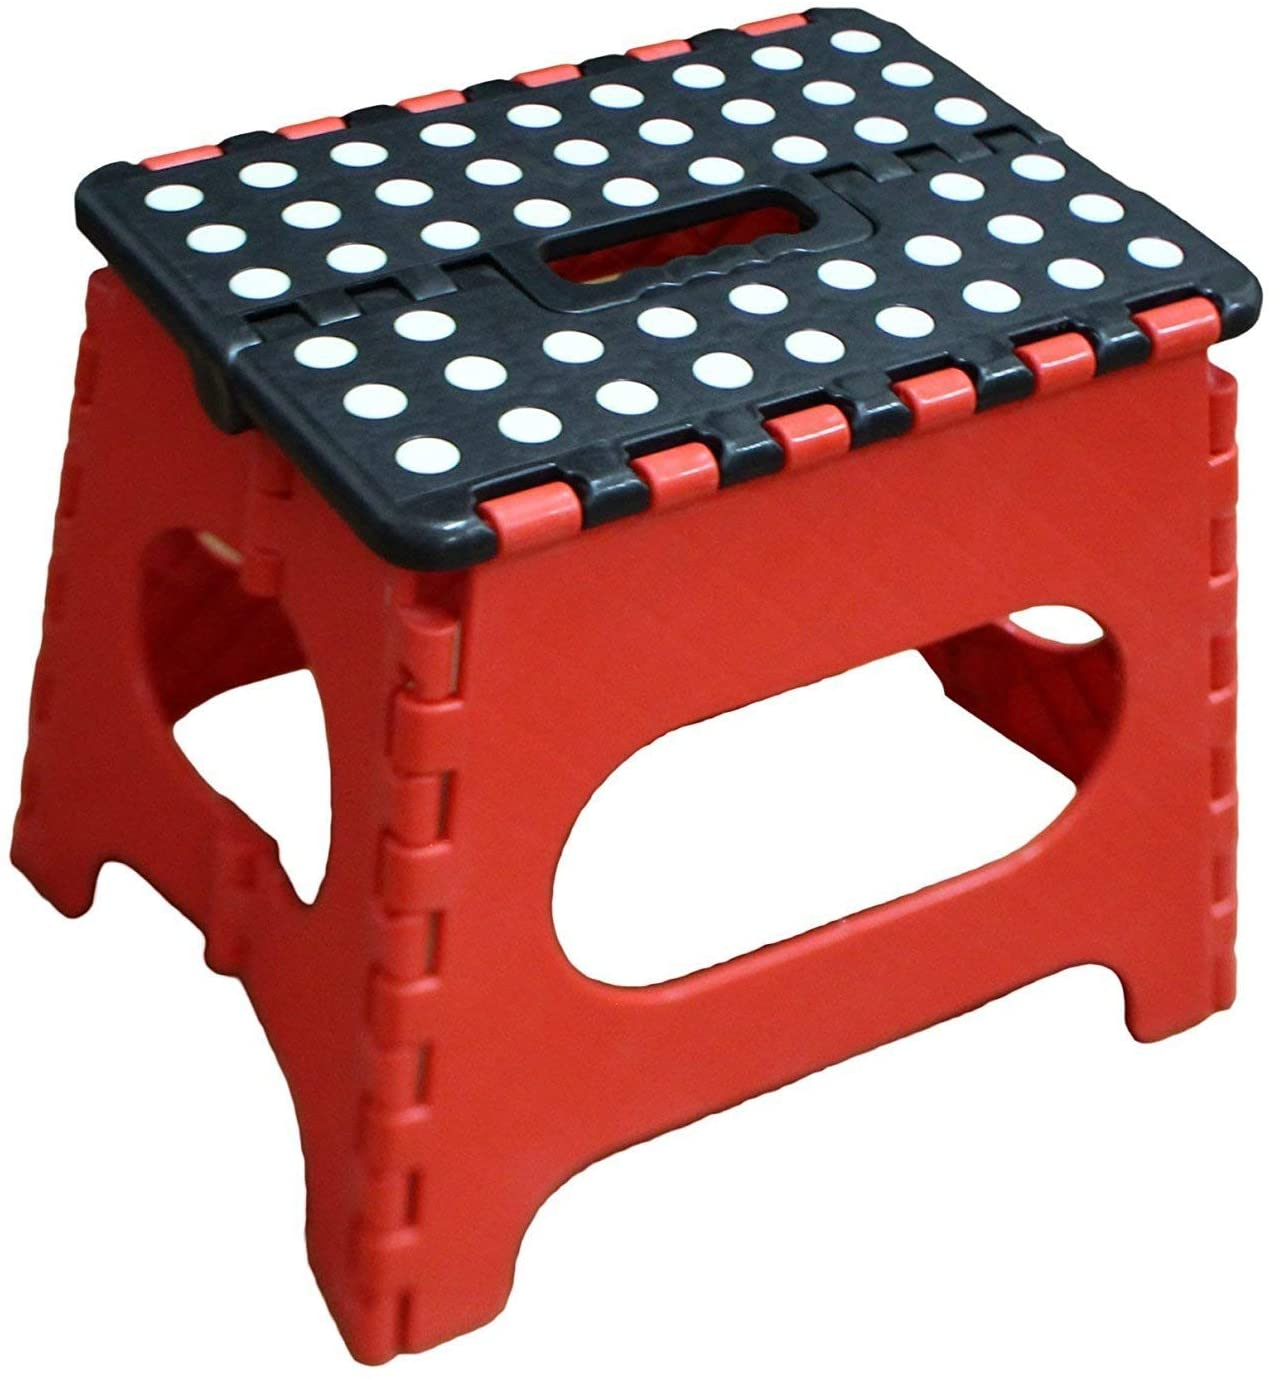 Jeronic Super Strong Folding Step Stool for Adults and Kids, Red Kitchen Stepping, Garden Step Stool, Holds up to 200 lbs.